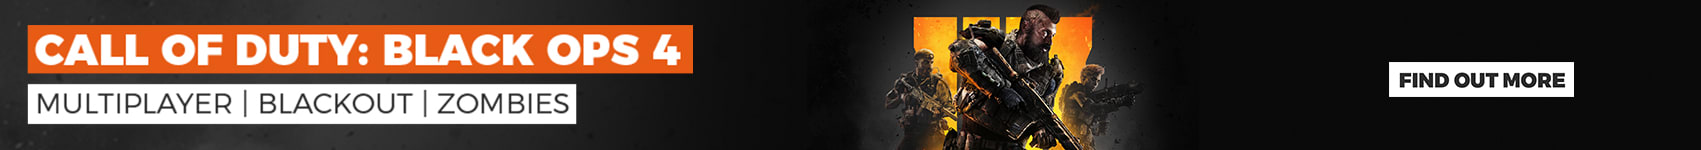 COD Black Ops 4 available now